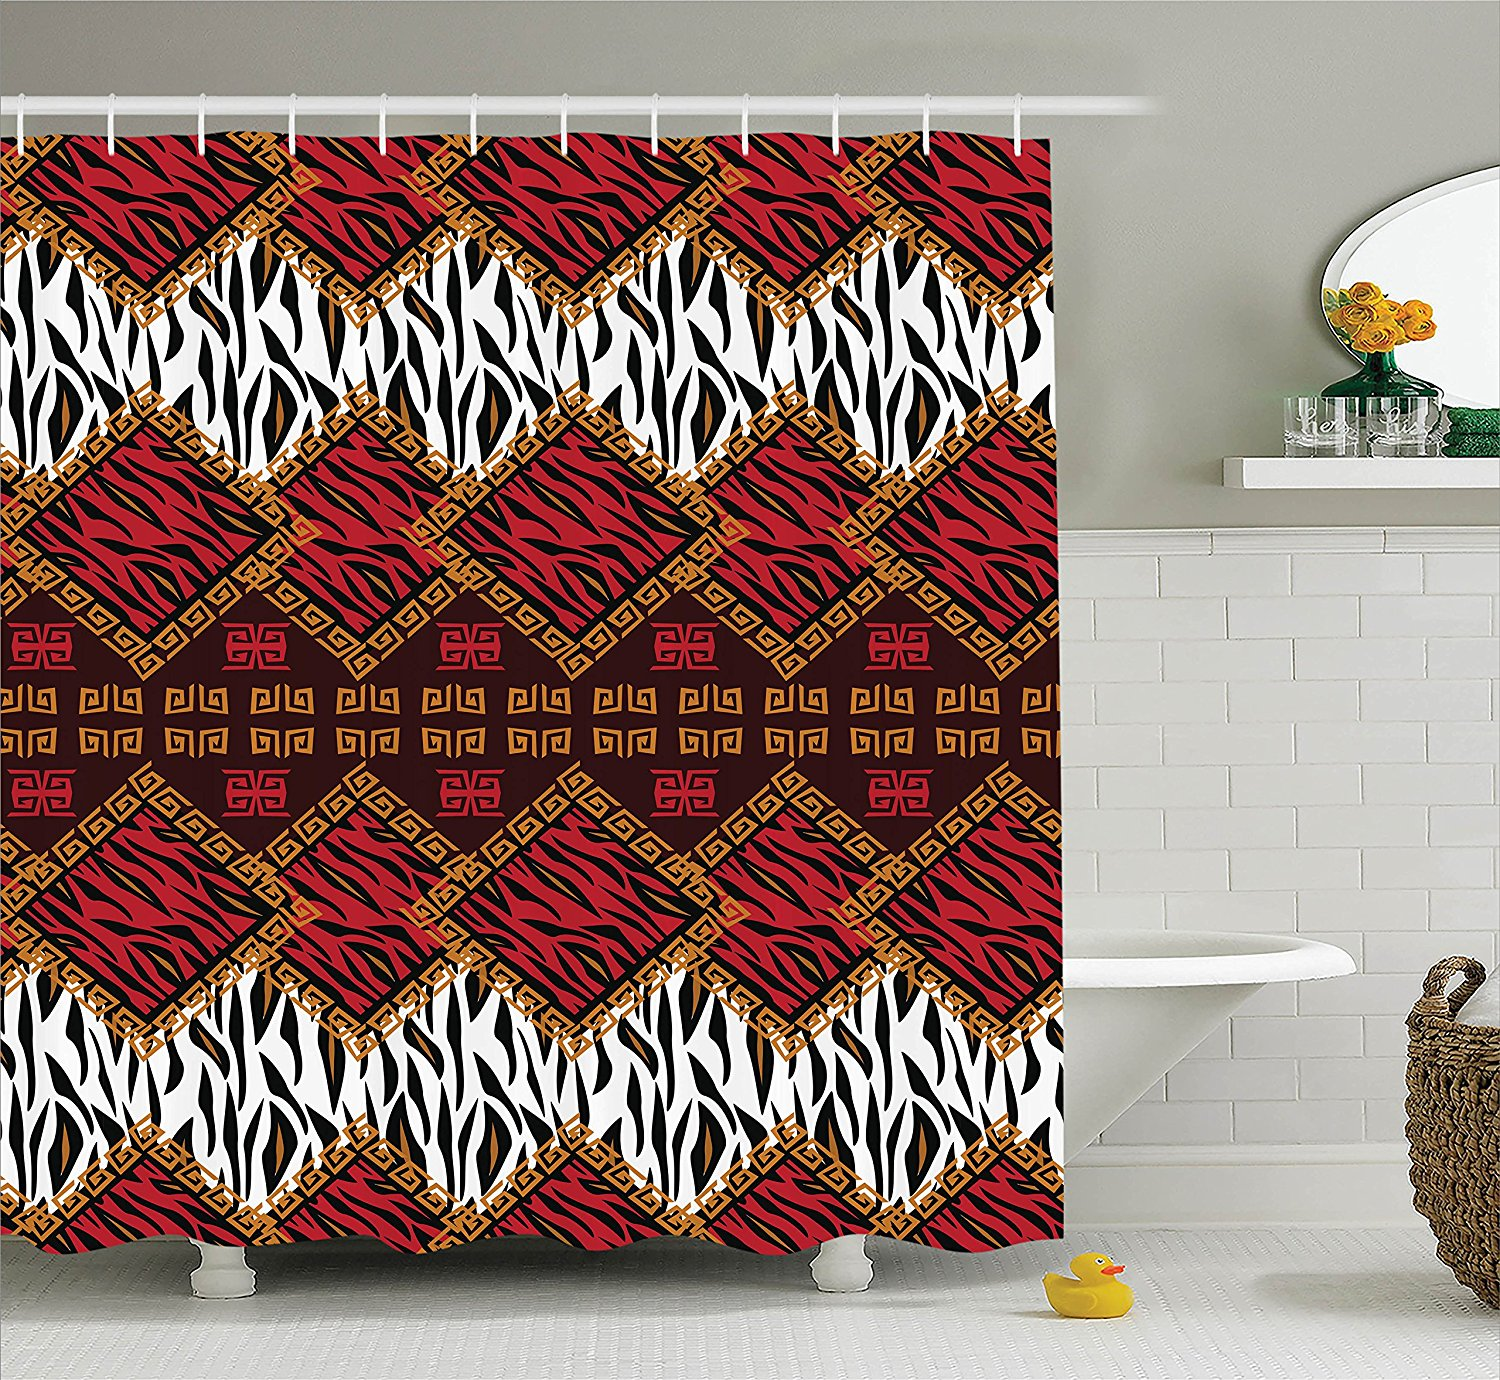 Quilt Shower Curtain Set Home Decor By African Style Wild Animal Skin Print Stripes In Diamond Pattern Native Tribal Artwork Bathroom Accessories With Hooks By Ambesonne Walmart Com Walmart Com